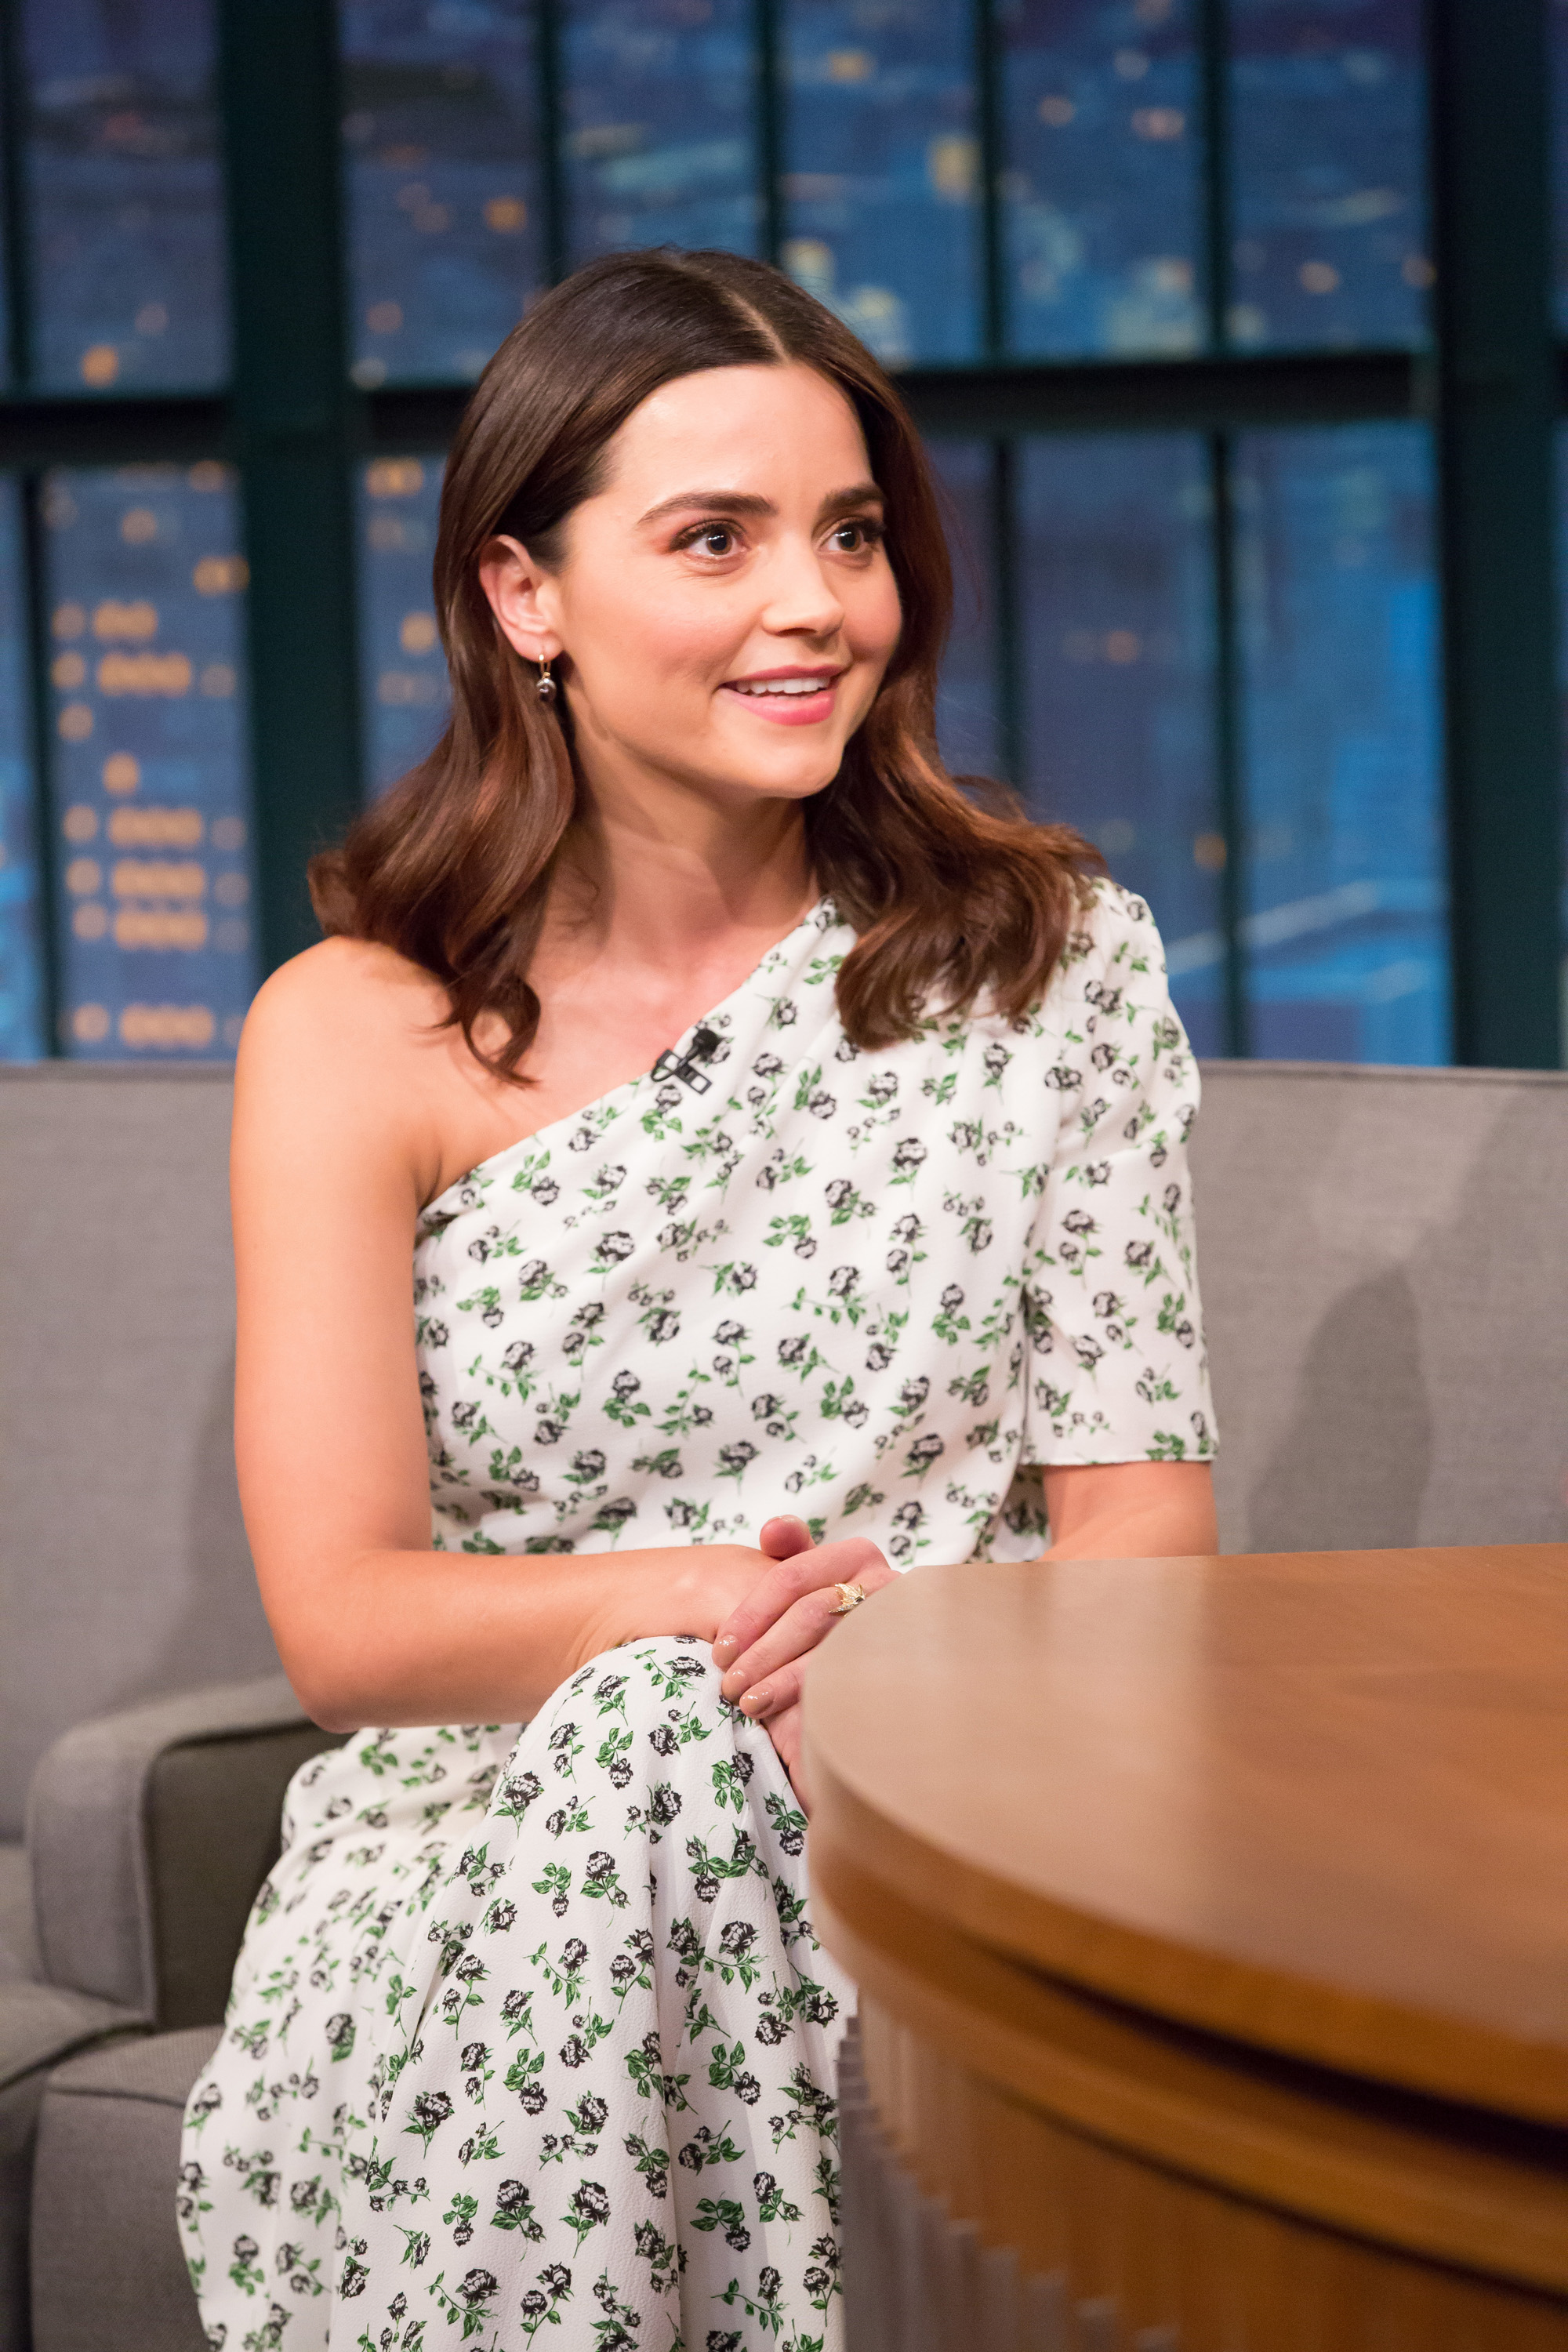 LATE NIGHT WITH SETH MEYERS -- Episode 624 -- Pictured: Actress Jenna Coleman during an interview on December 12, 2017 -- (Photo by: Lloyd Bishop/NBC/NBCU Photo Bank via Getty Images)  Getty, TL